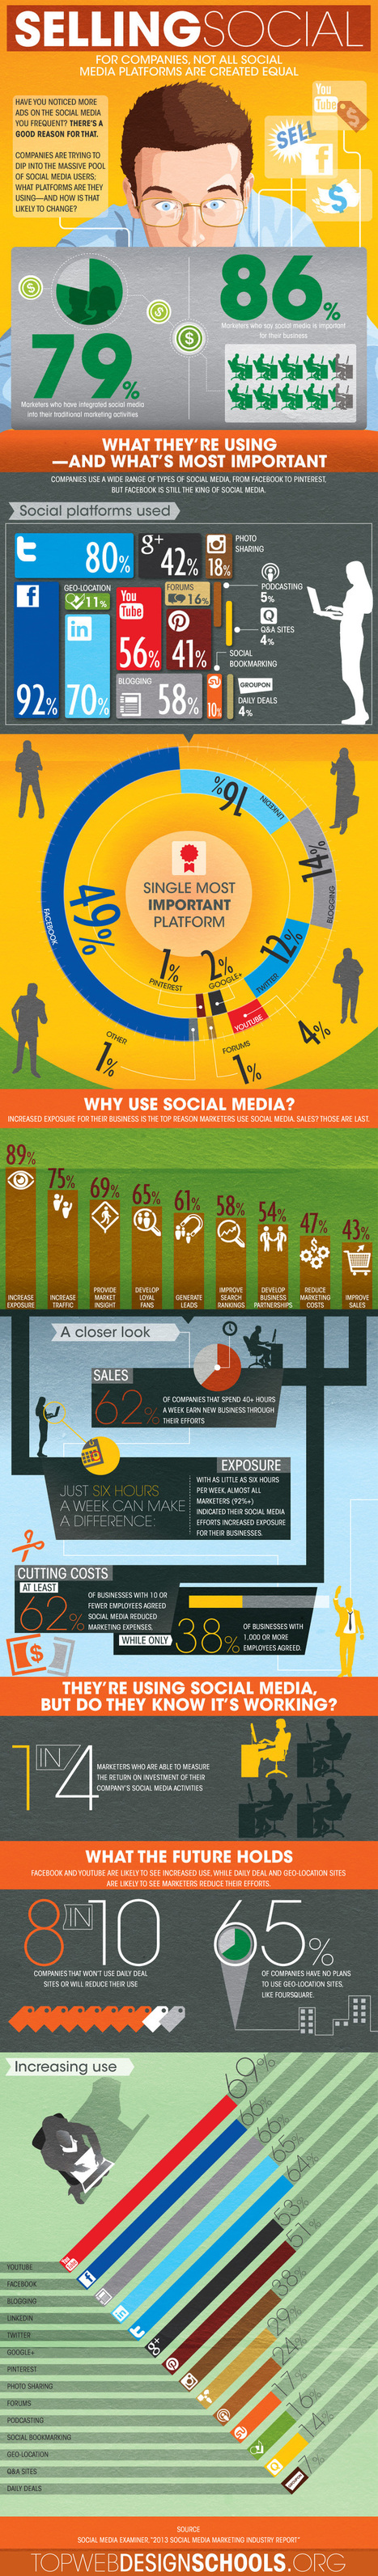 Selling Social Infographic | E-Strands Digital Marketing News | Scoop.it